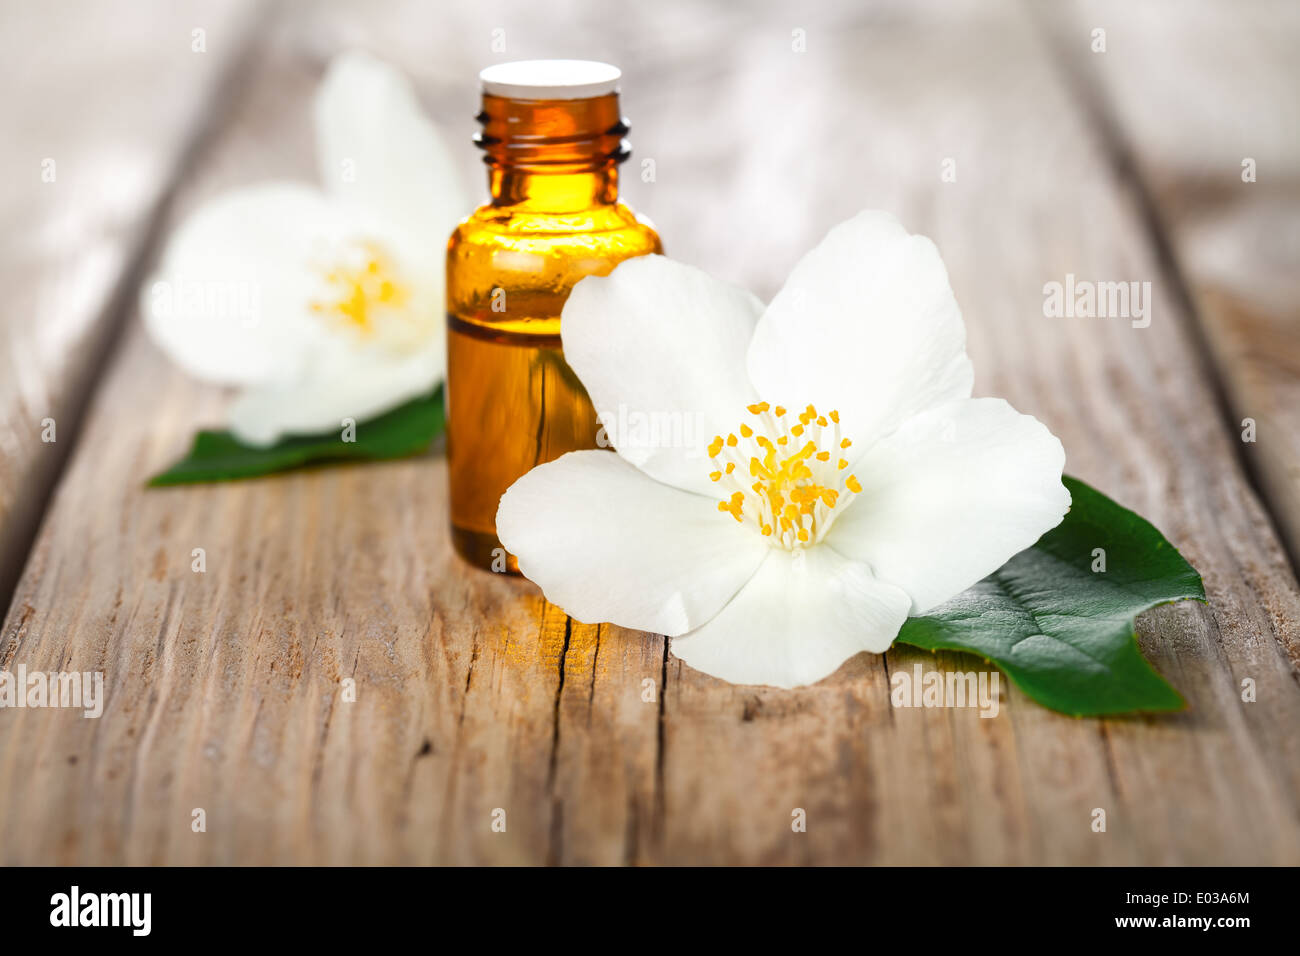 Jasmine oil stock photos jasmine oil stock images alamy jasmine flowers with essential oil on table background beauty treatment stock image izmirmasajfo